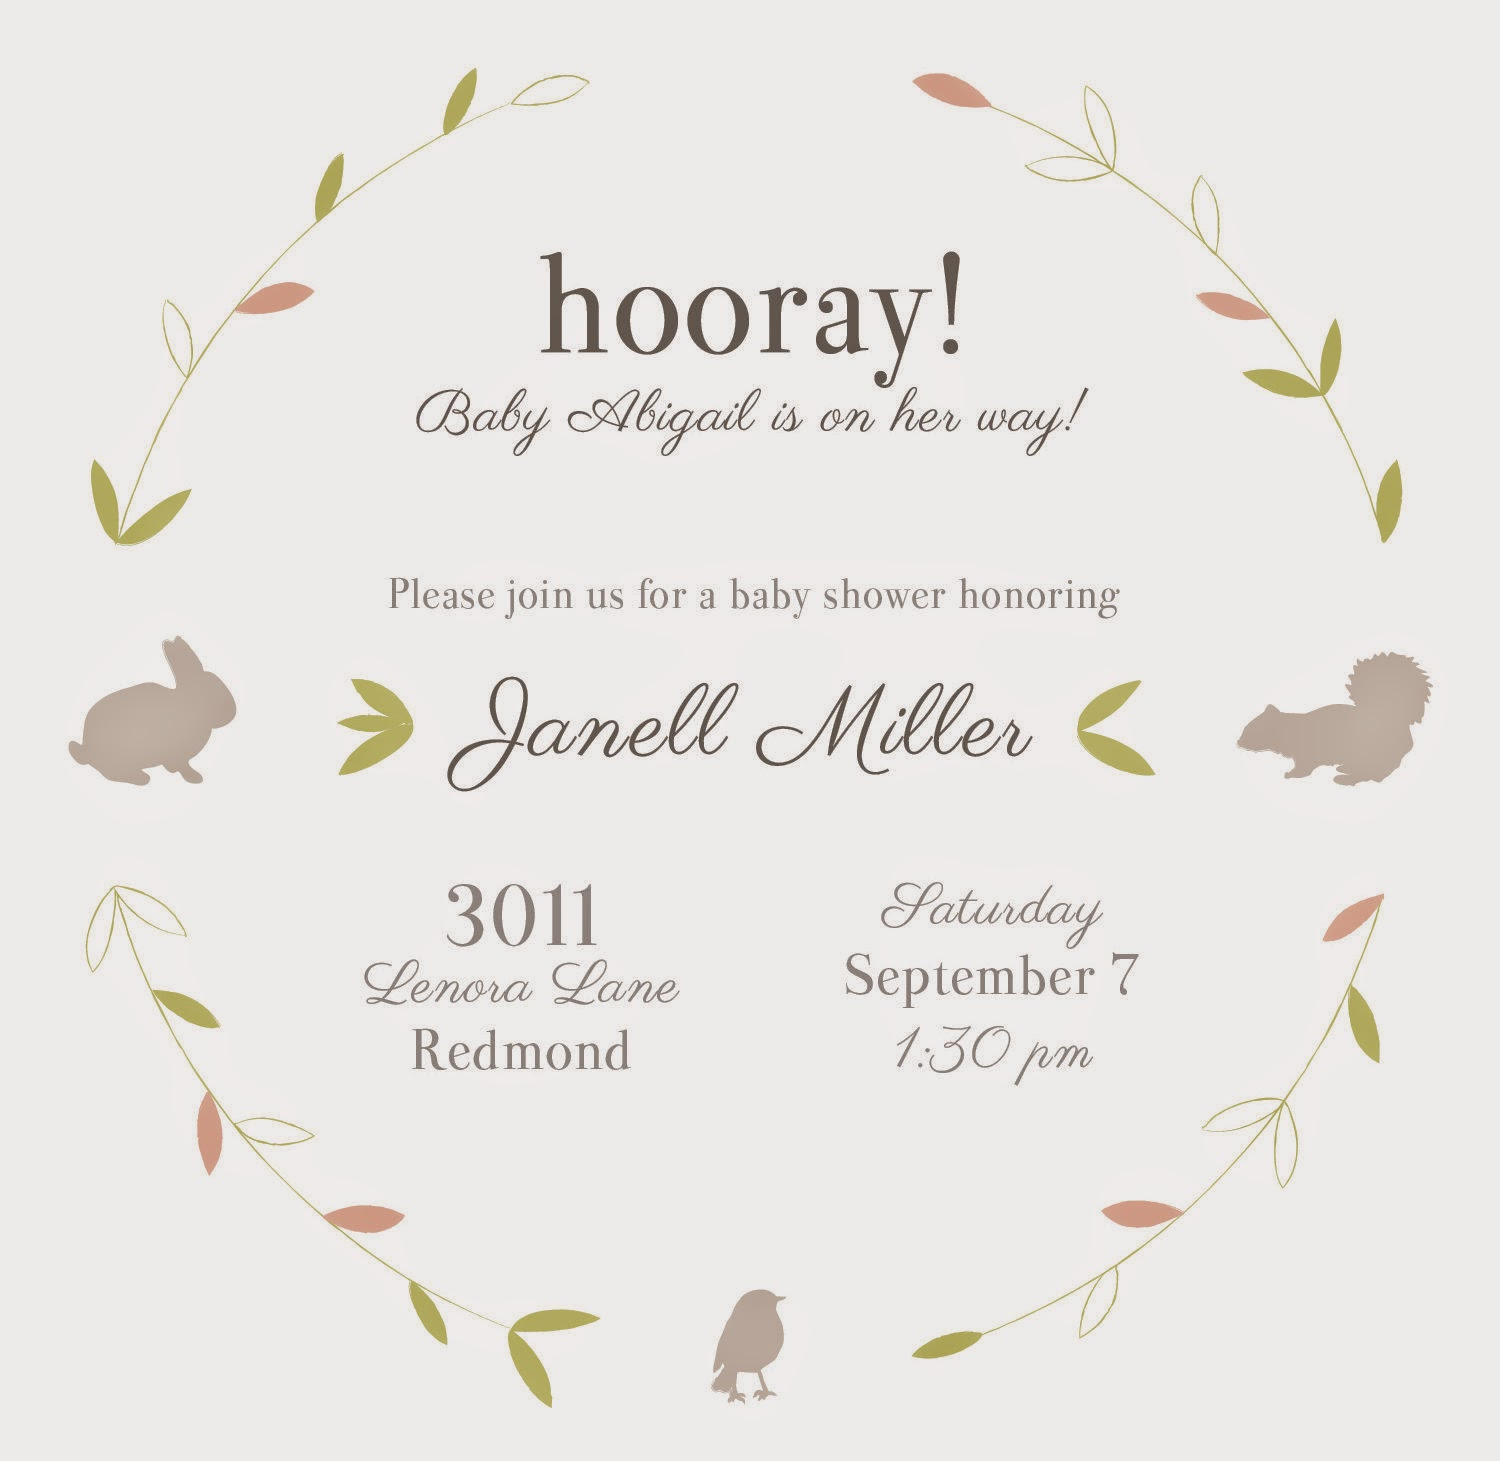 https://www.etsy.com/listing/208750985/baby-shower-invitation-template-sweet?ref=shop_home_active_9